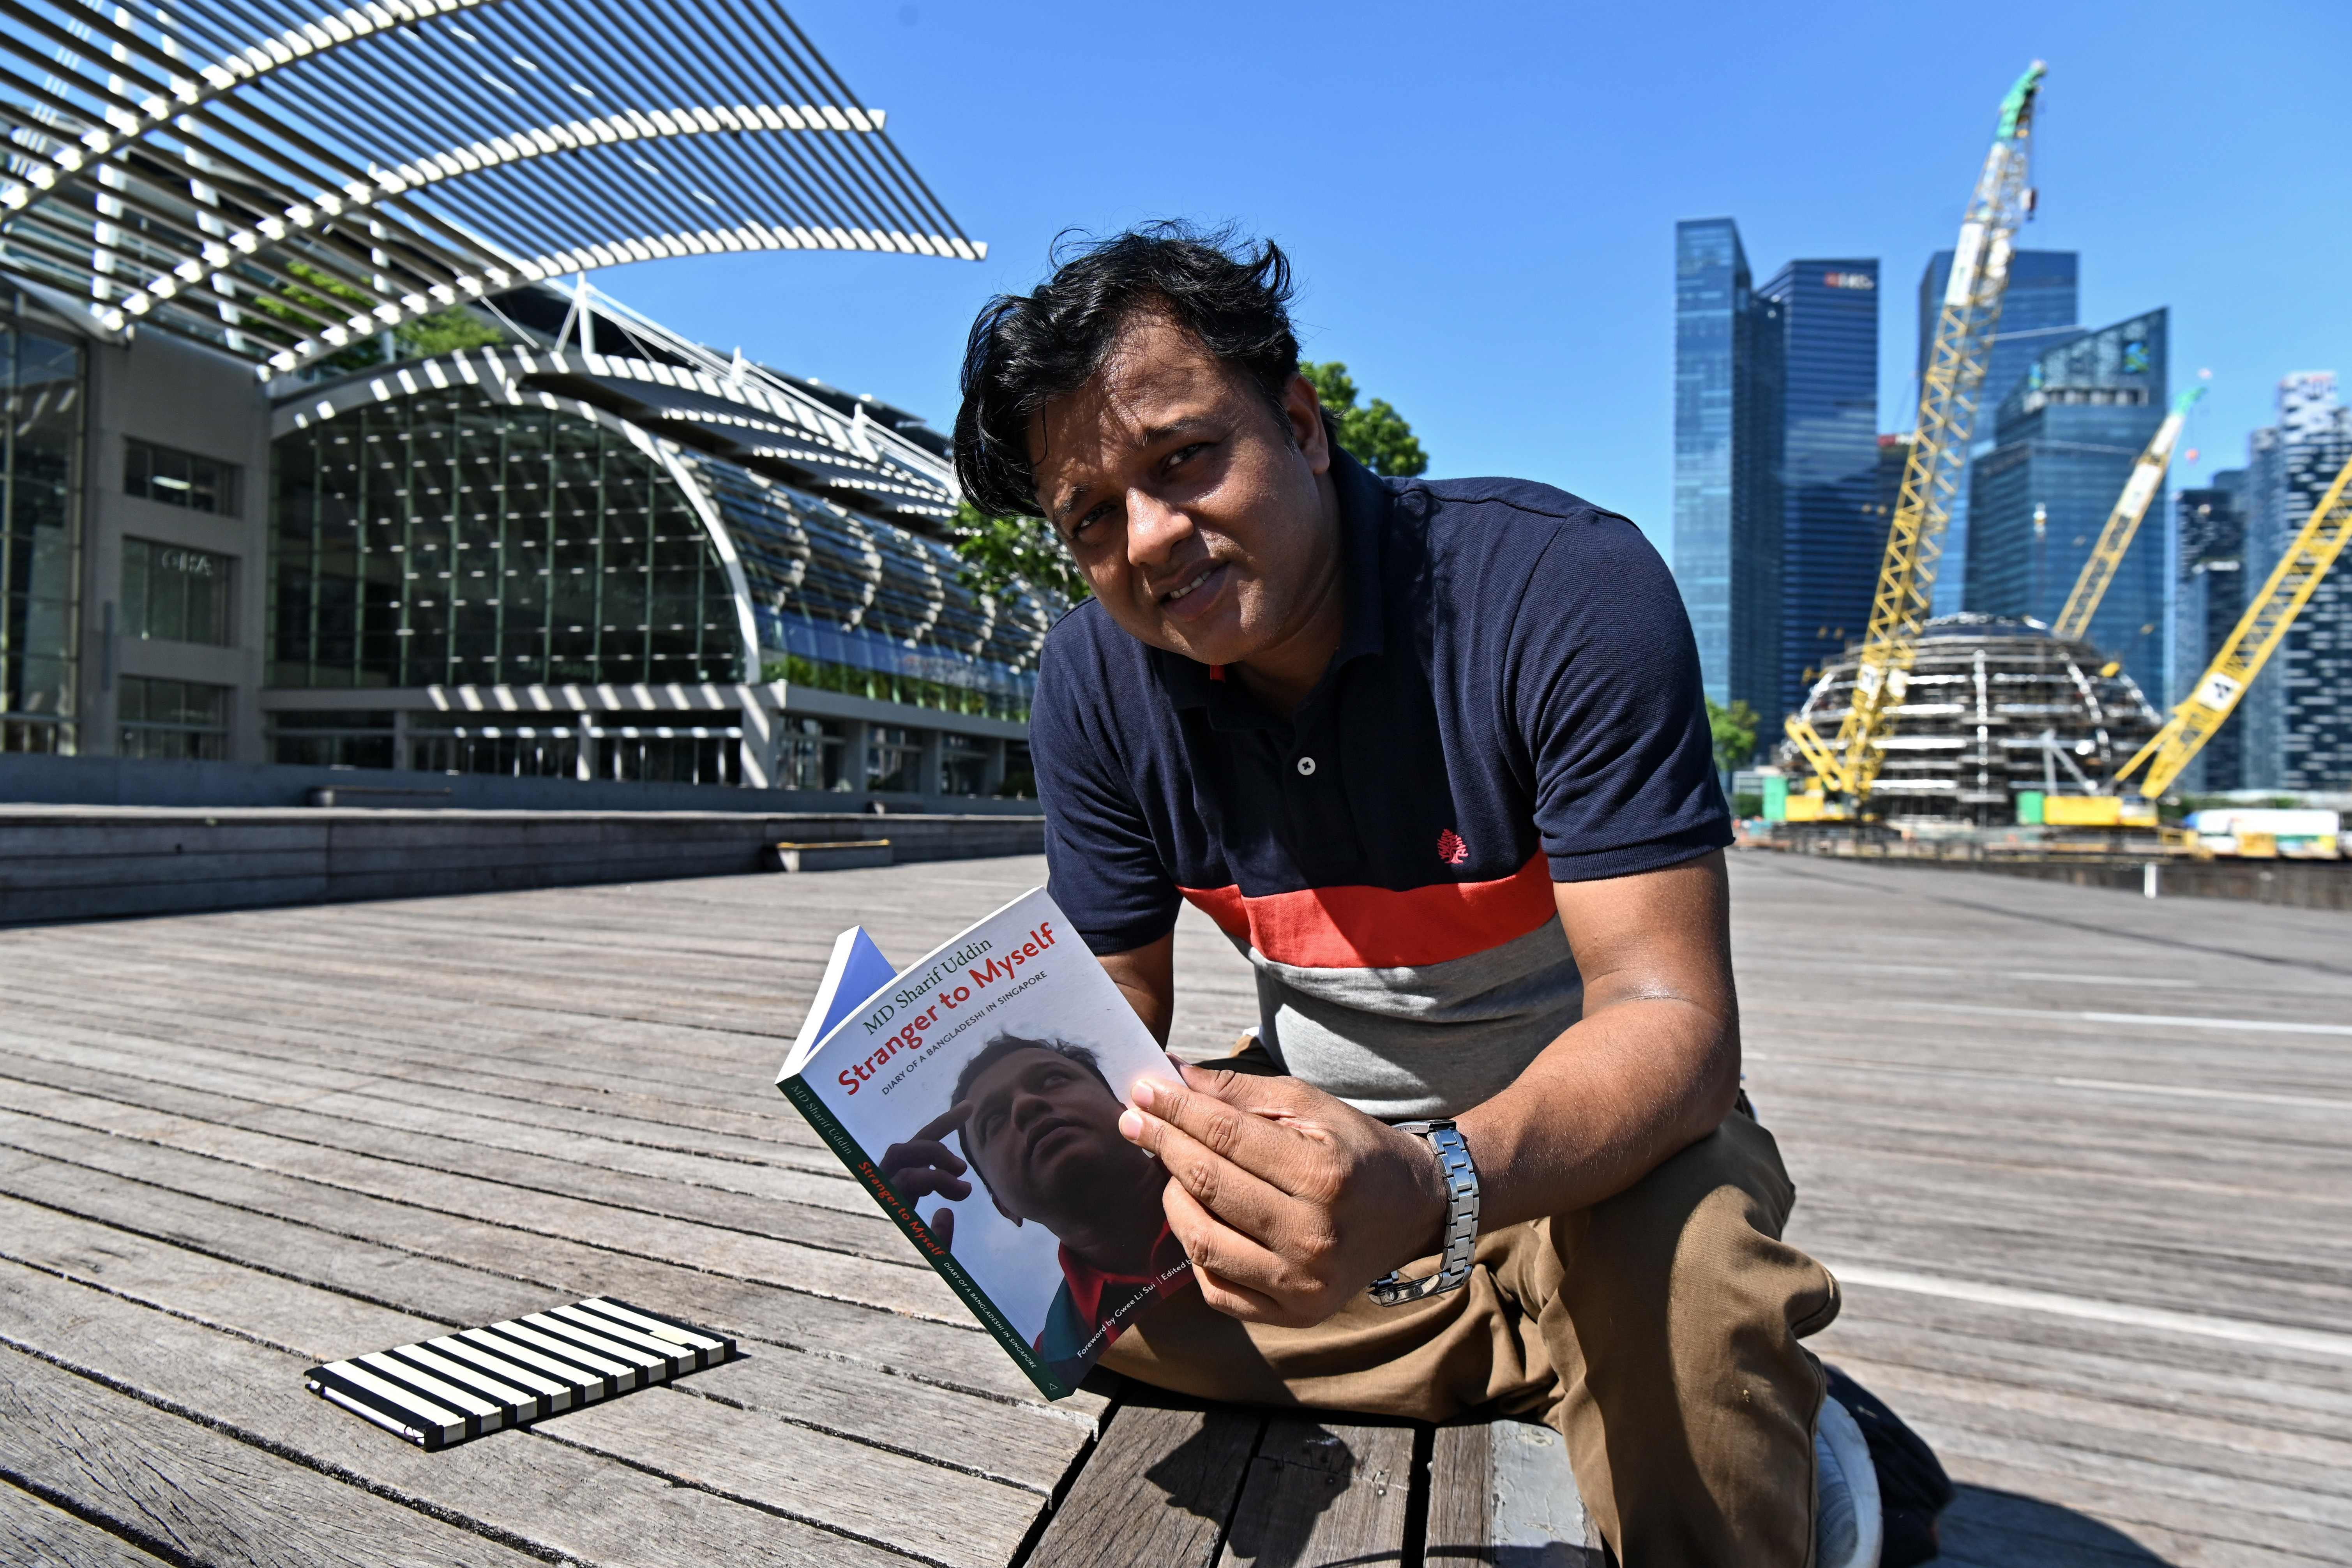 Bangladeshi man's diary shines rare light on daily struggles experienced by migrant workers in Singapore